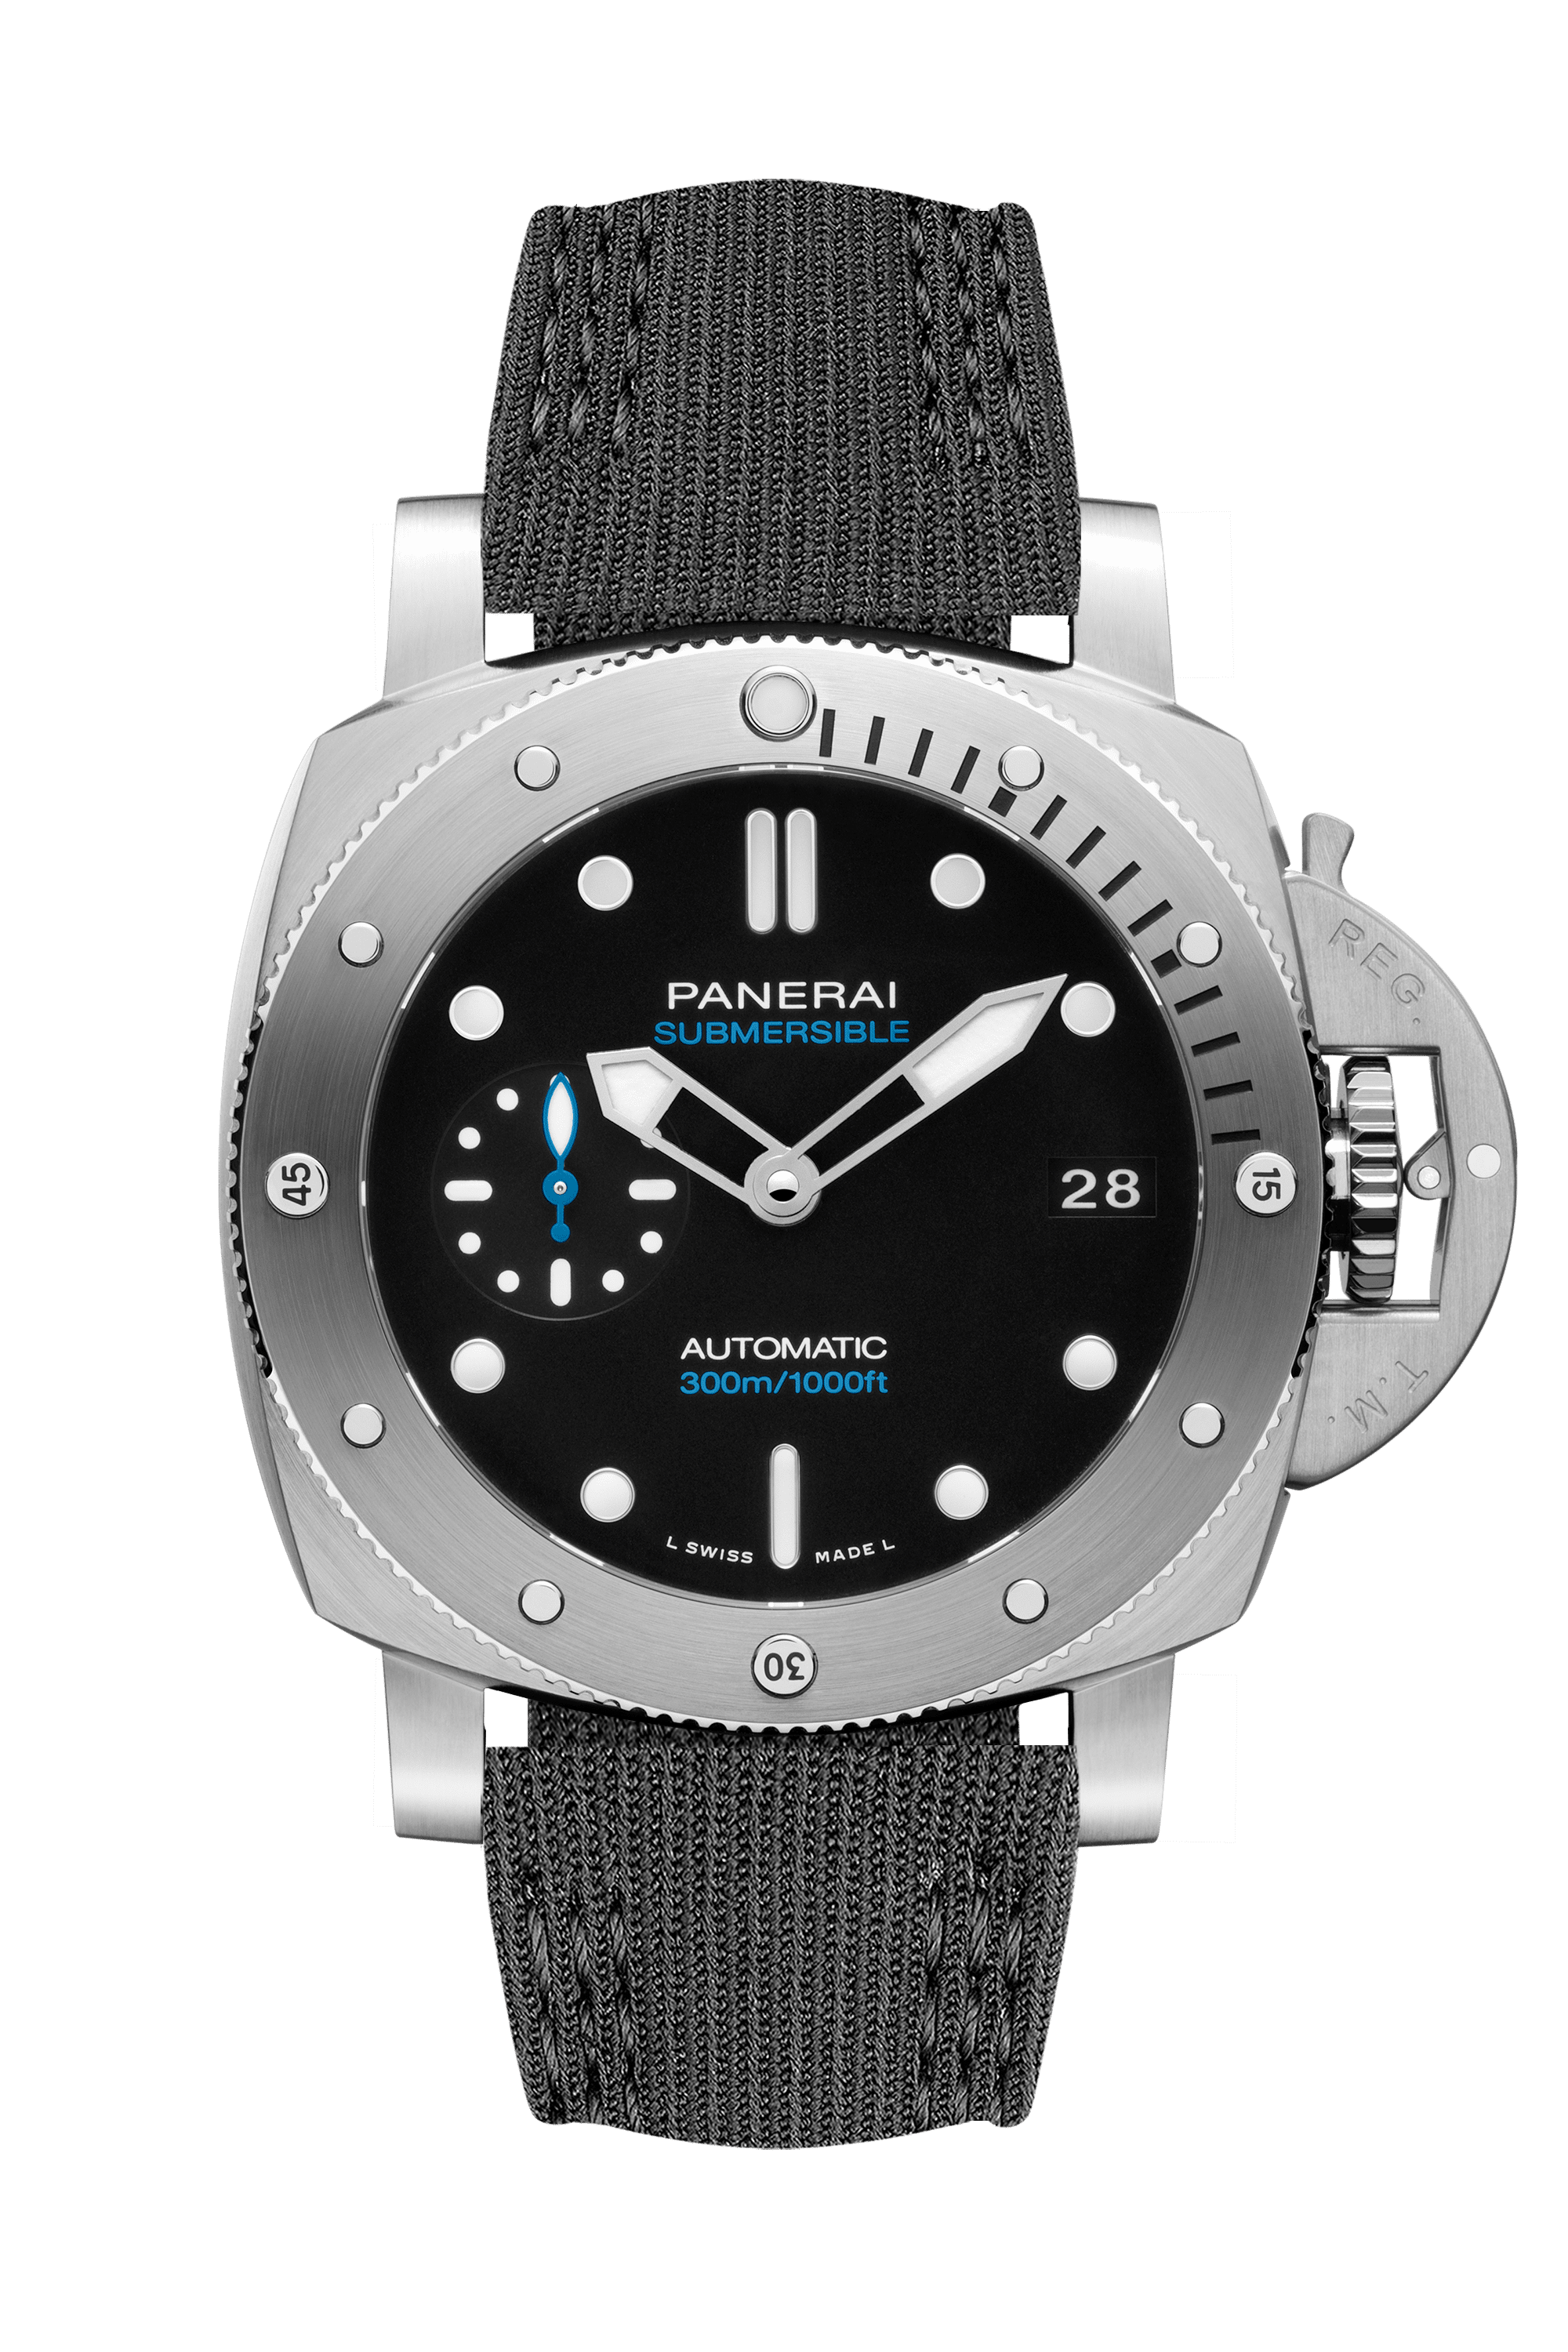 PNPAM00973 - Submersible - 42mm